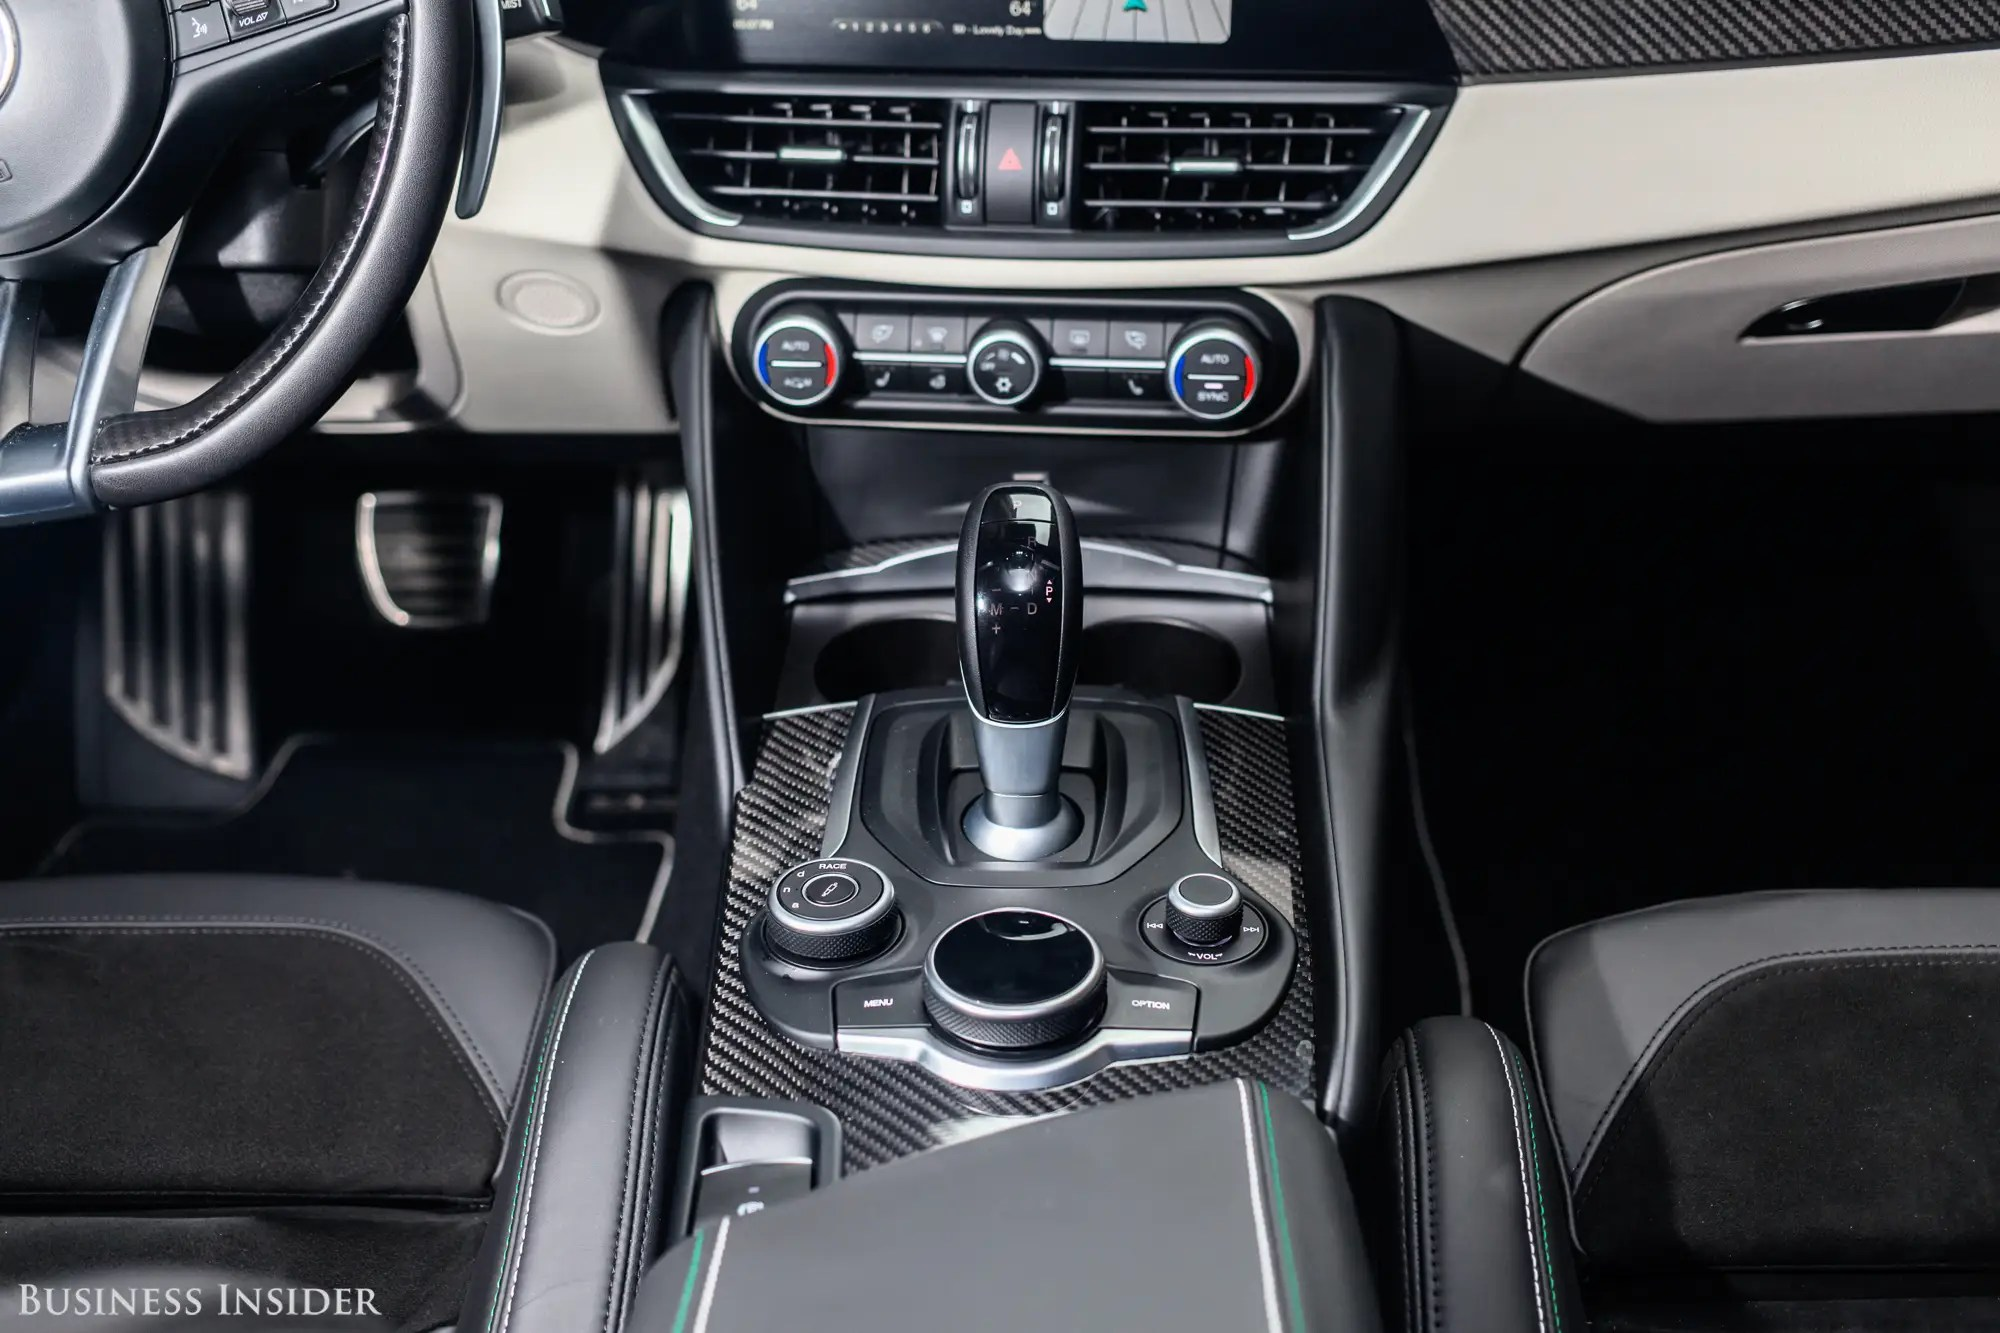 The central console presents a drive-mode selector — Dynamic, Natural, Advanced Efficiency, and Race are on tap — and a hockey-puck-style infotainment knob, all framed in carbon fiber.